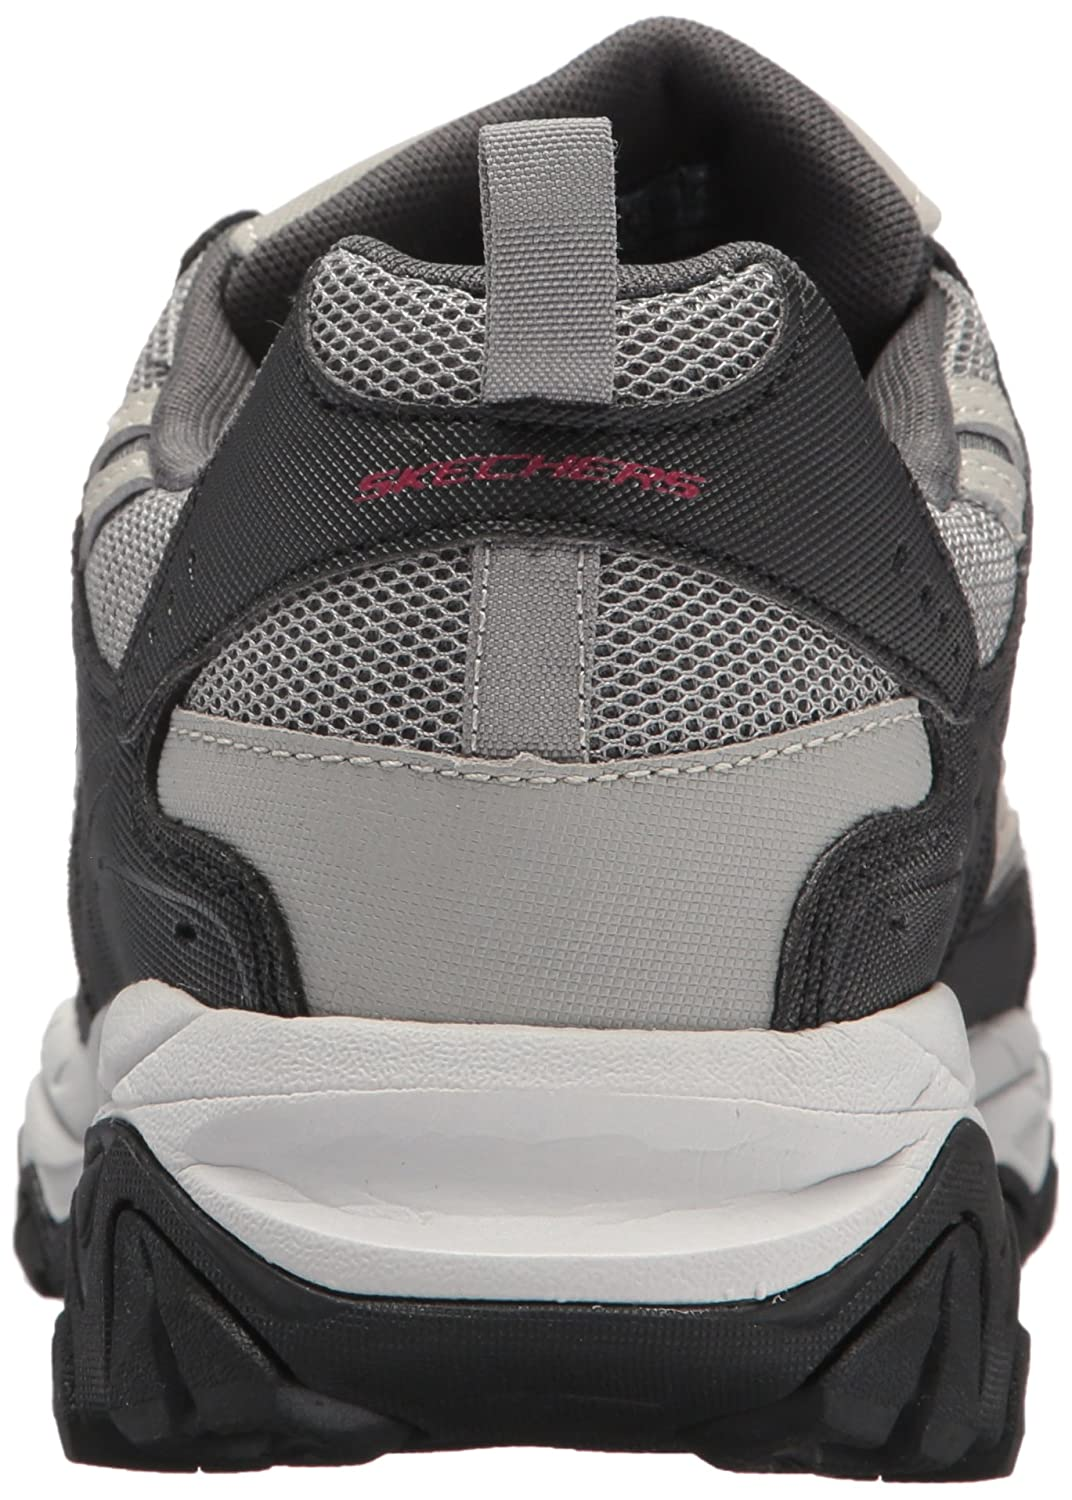 Skechers-Afterburn-Memory-Foam-M-Fit-Men-039-s-Sport-After-Burn-Sneakers-Shoes thumbnail 51